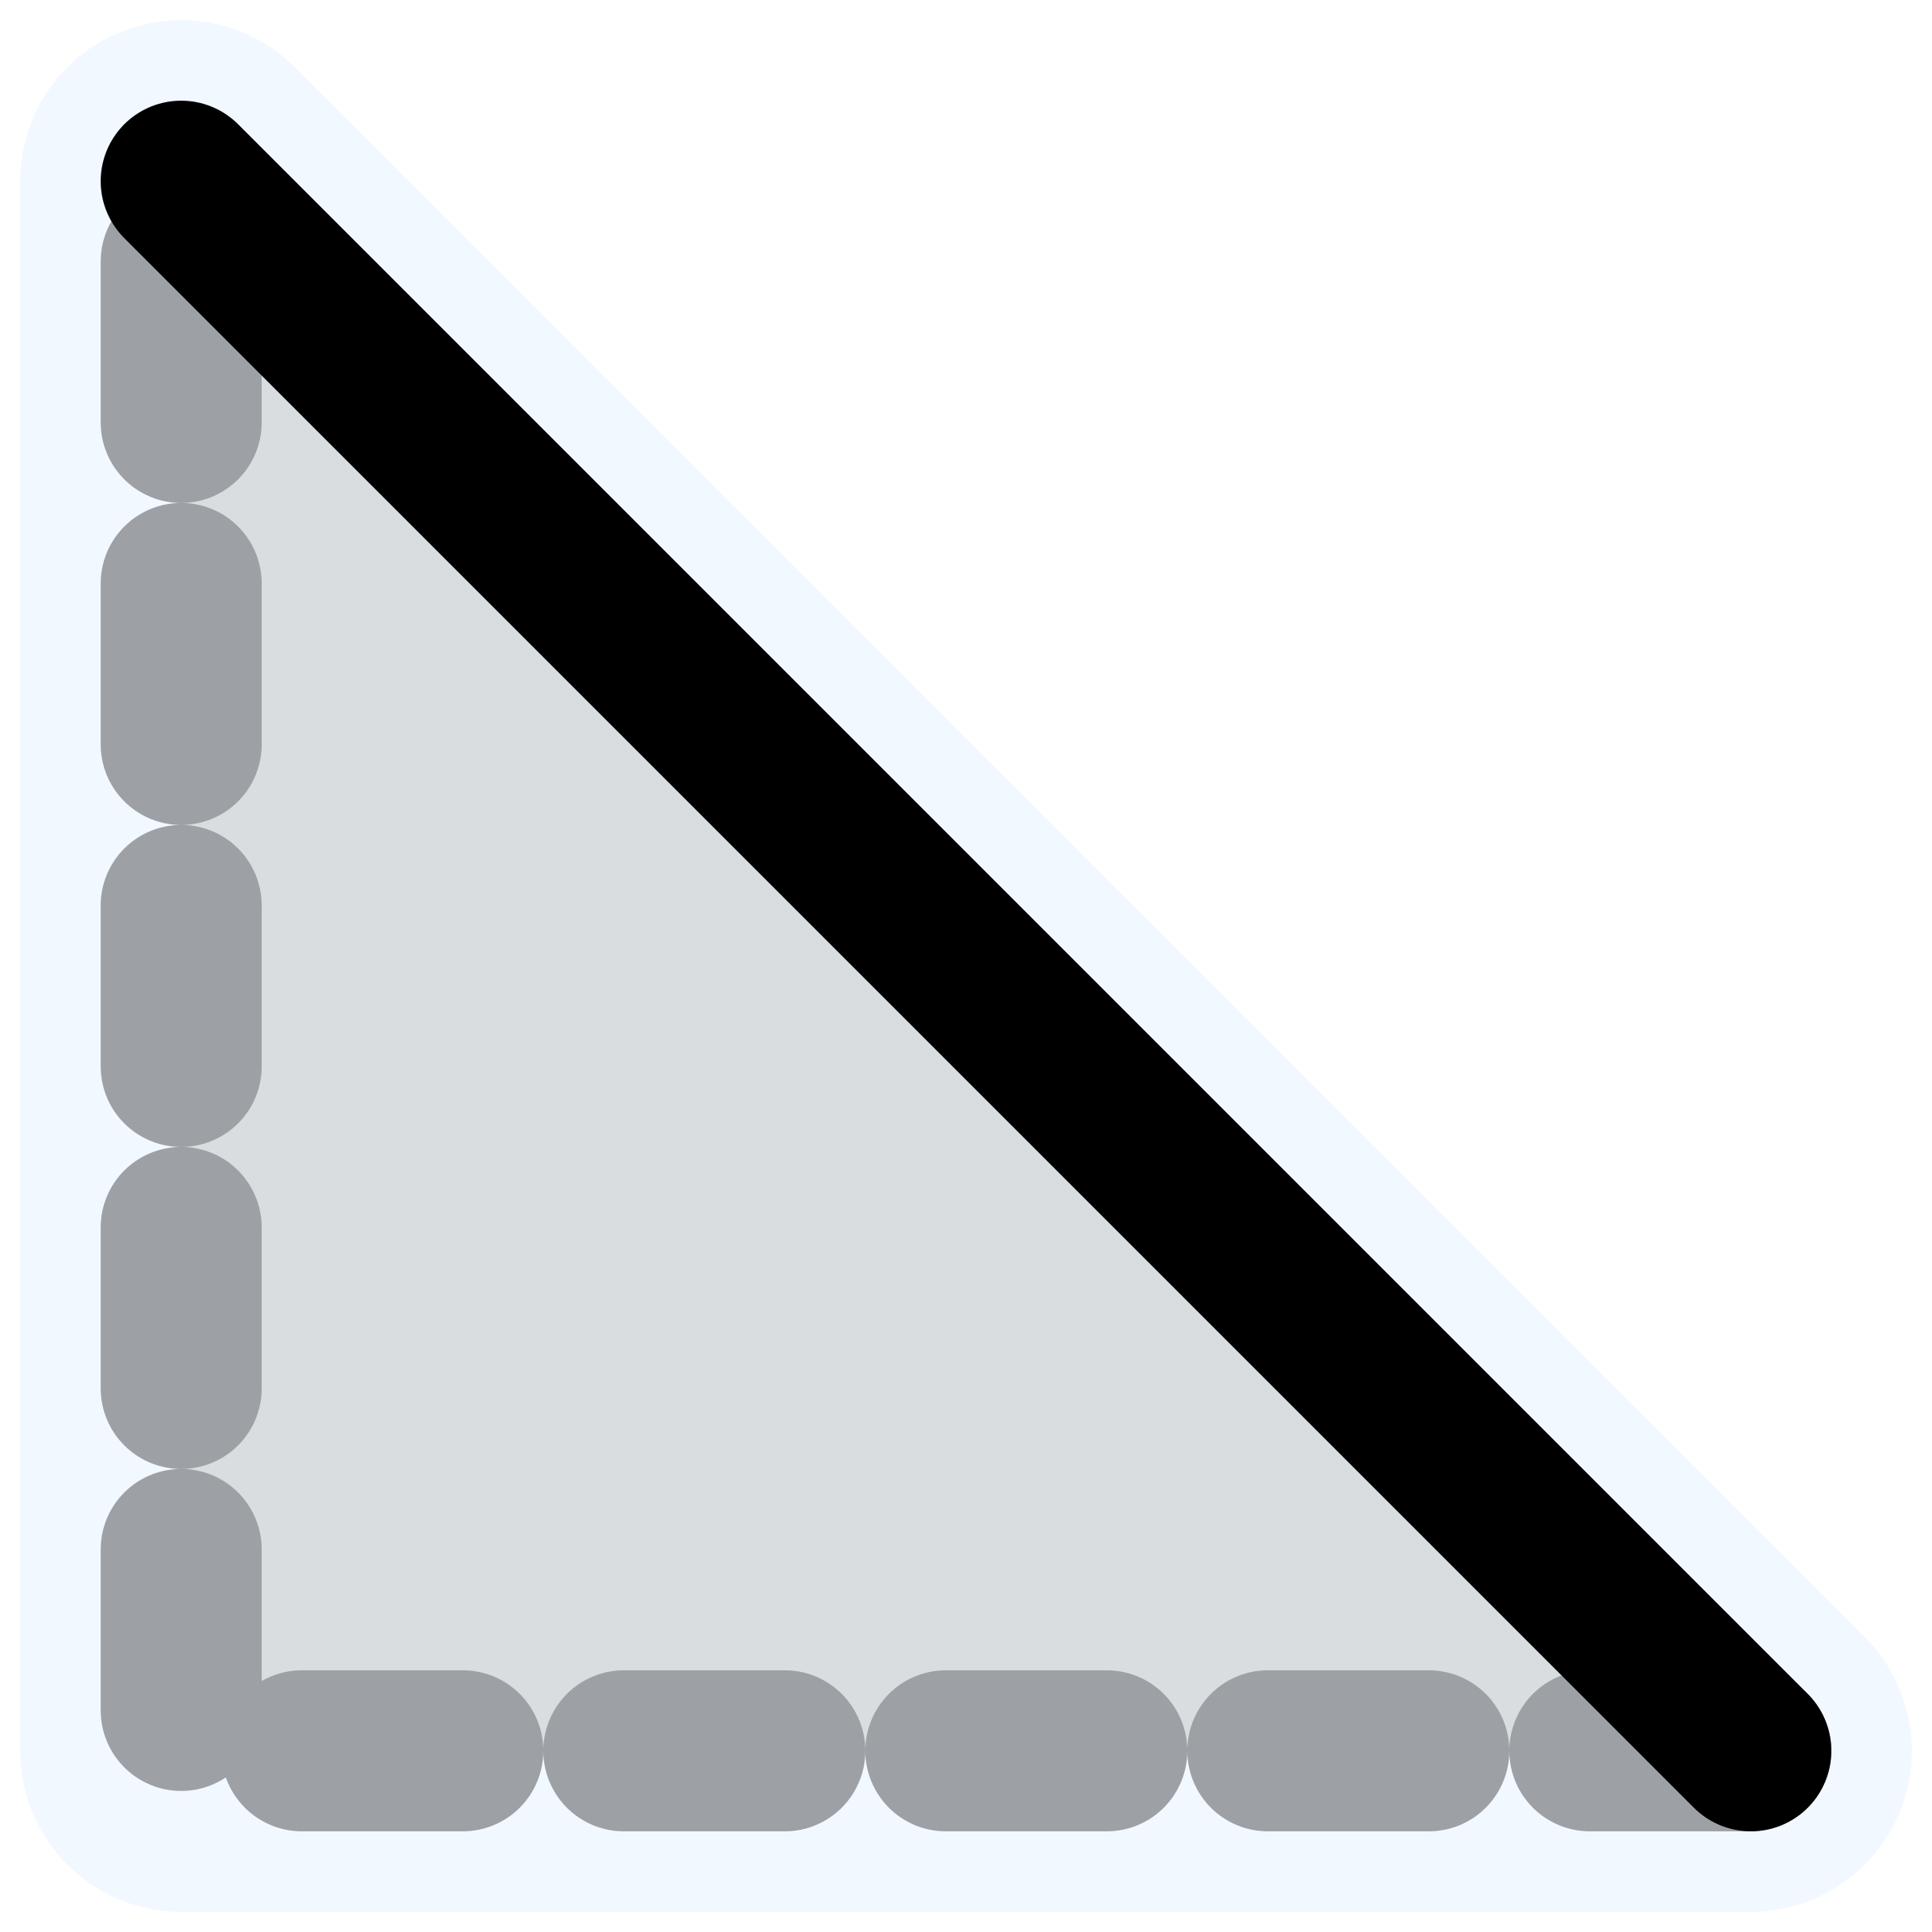 Slope Clipart.